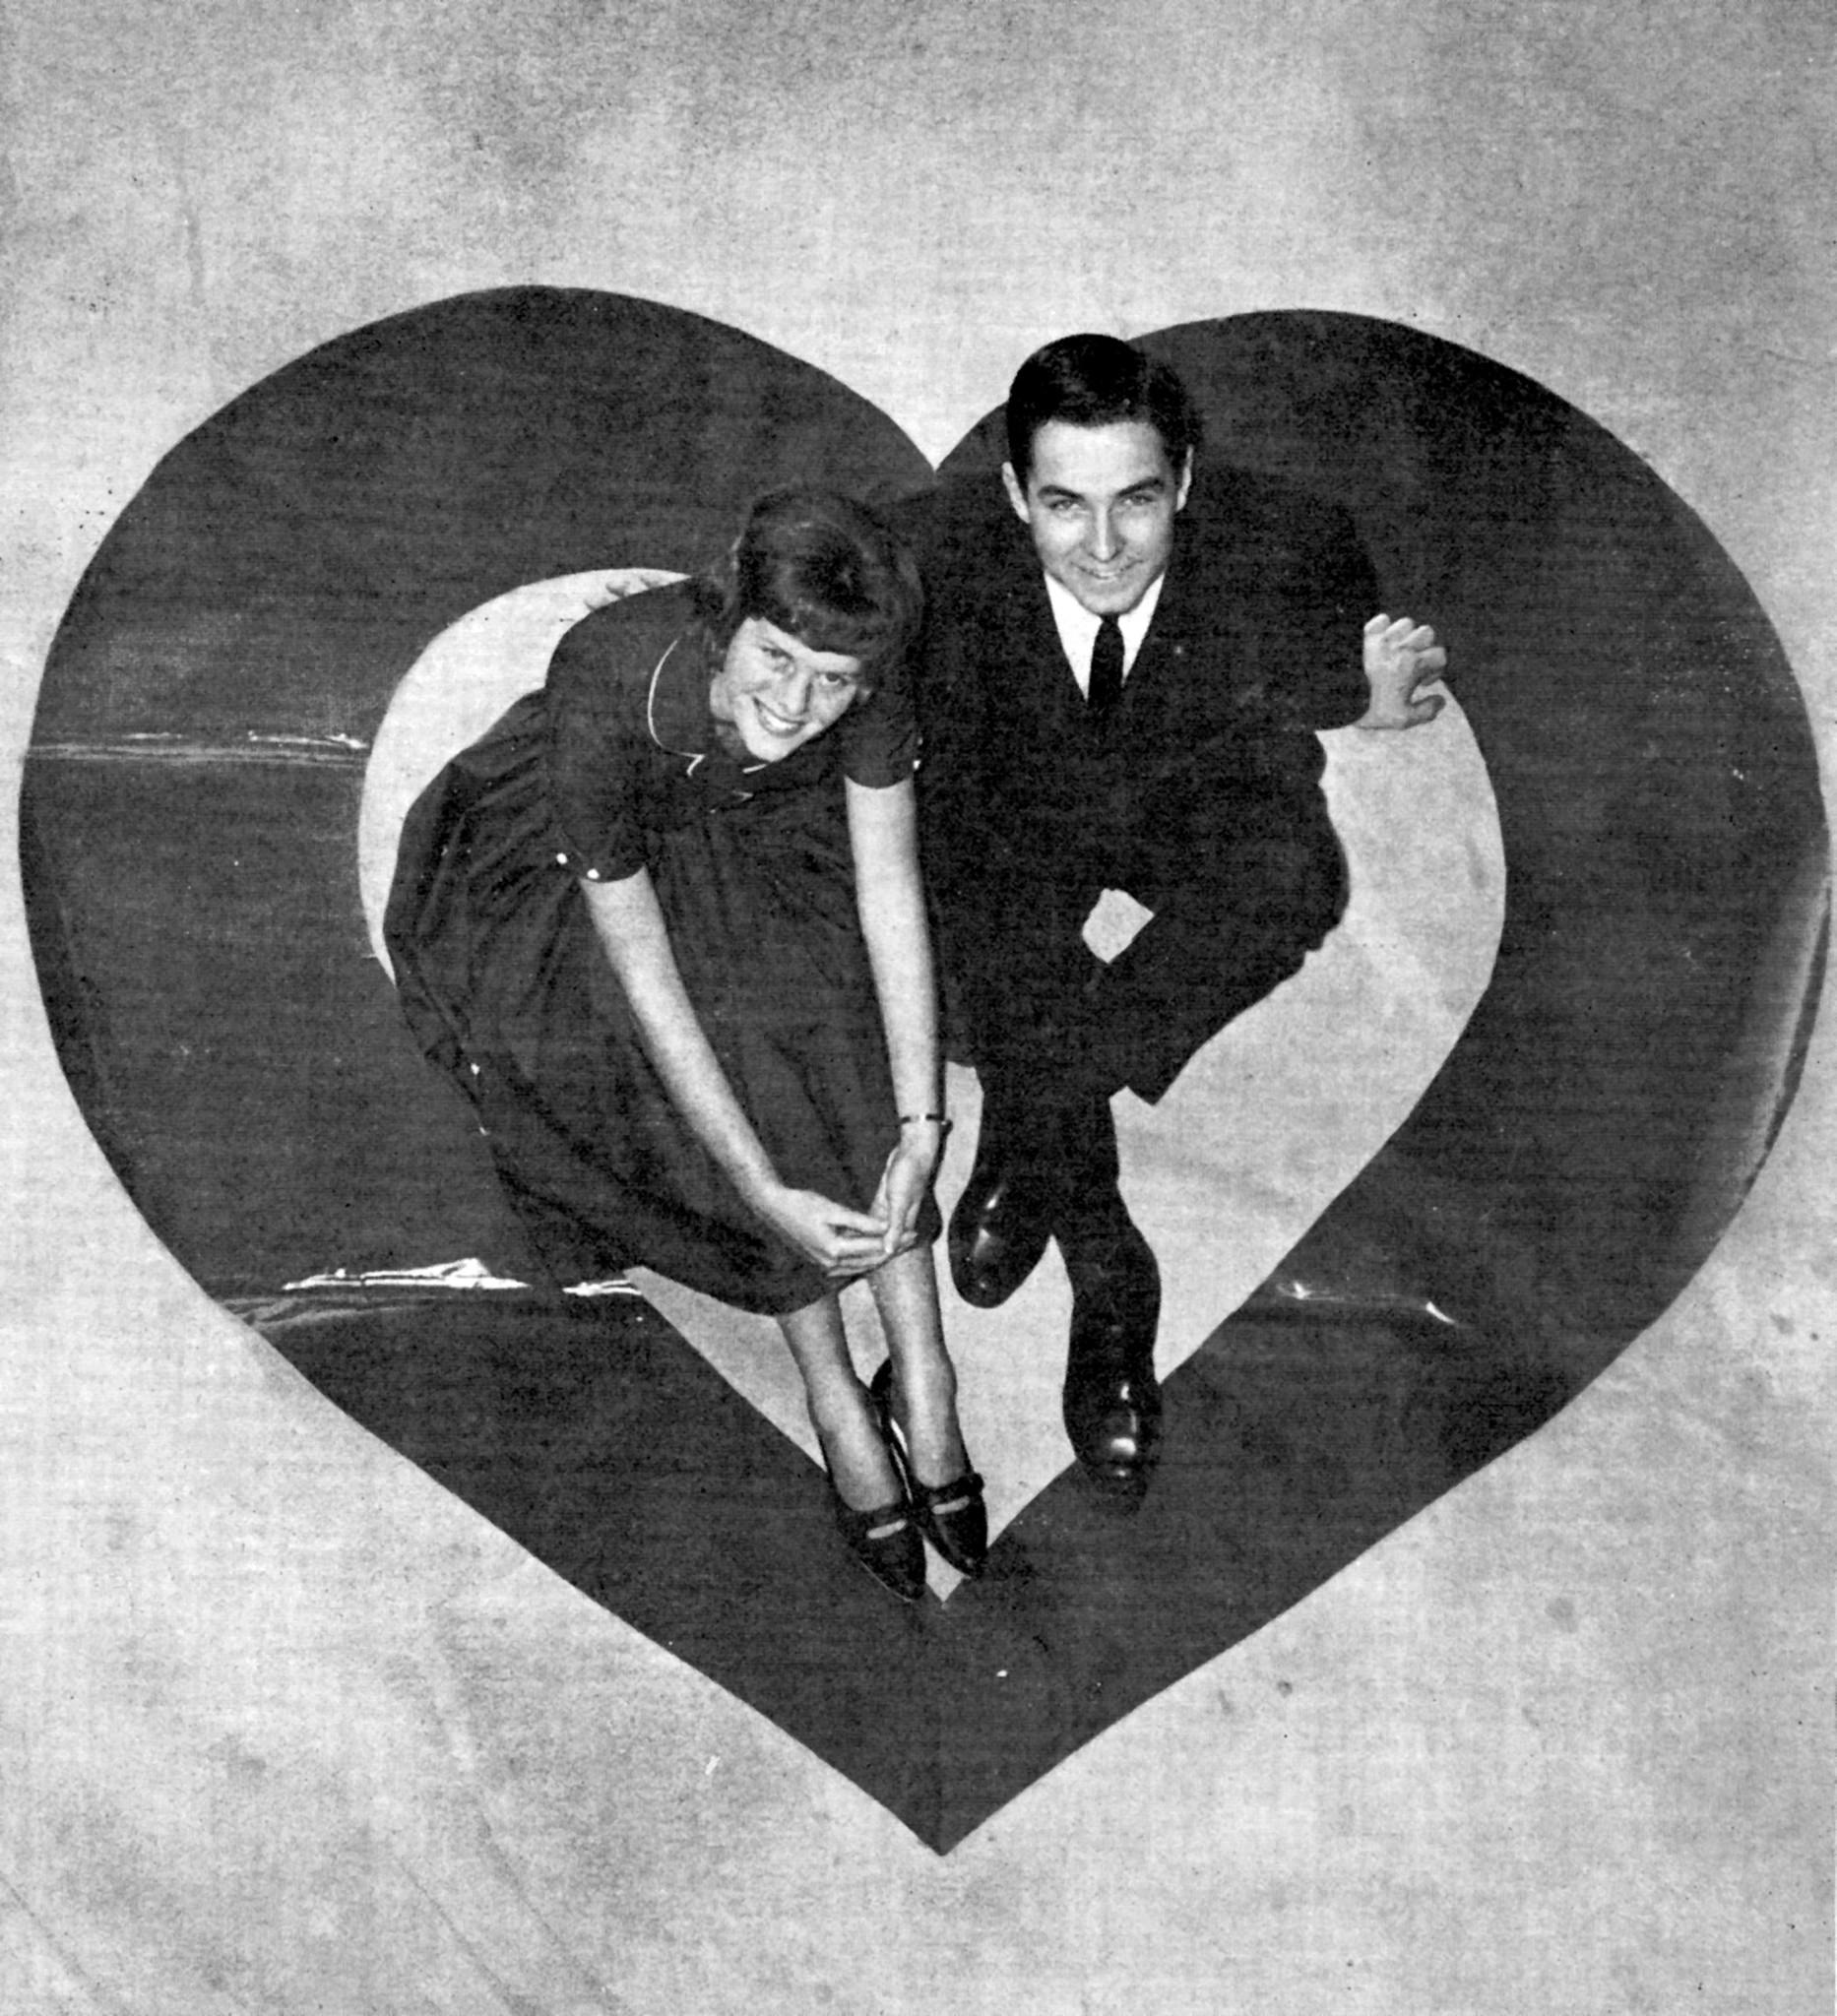 La Cañada High School students Ellie Annan and Dale Lepper pose on a vinyl heart to publicize in the Valley Sun that the newly-opened school would hold its first Valentine's Day dance in February 1964.